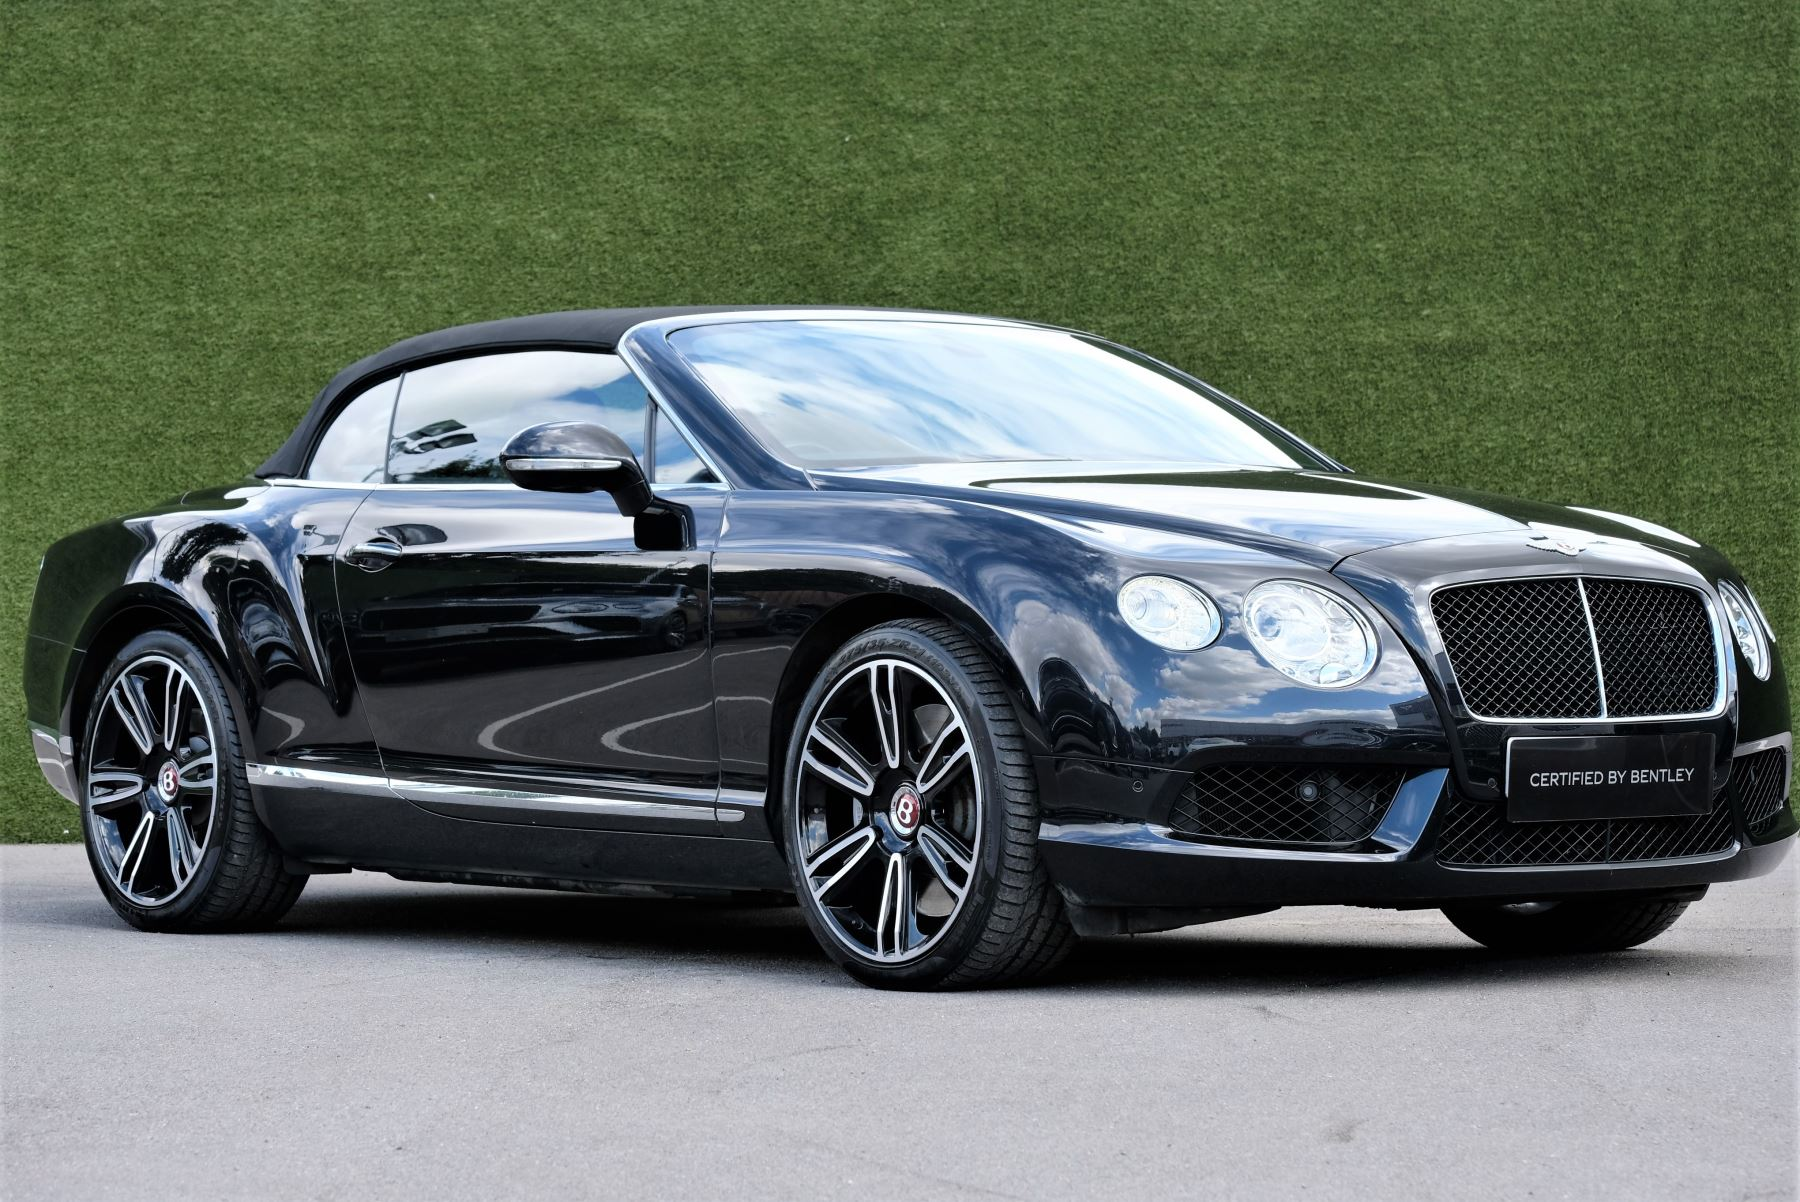 Bentley Continental GTC 4.0 V8 2dr Automatic Convertible (2013)